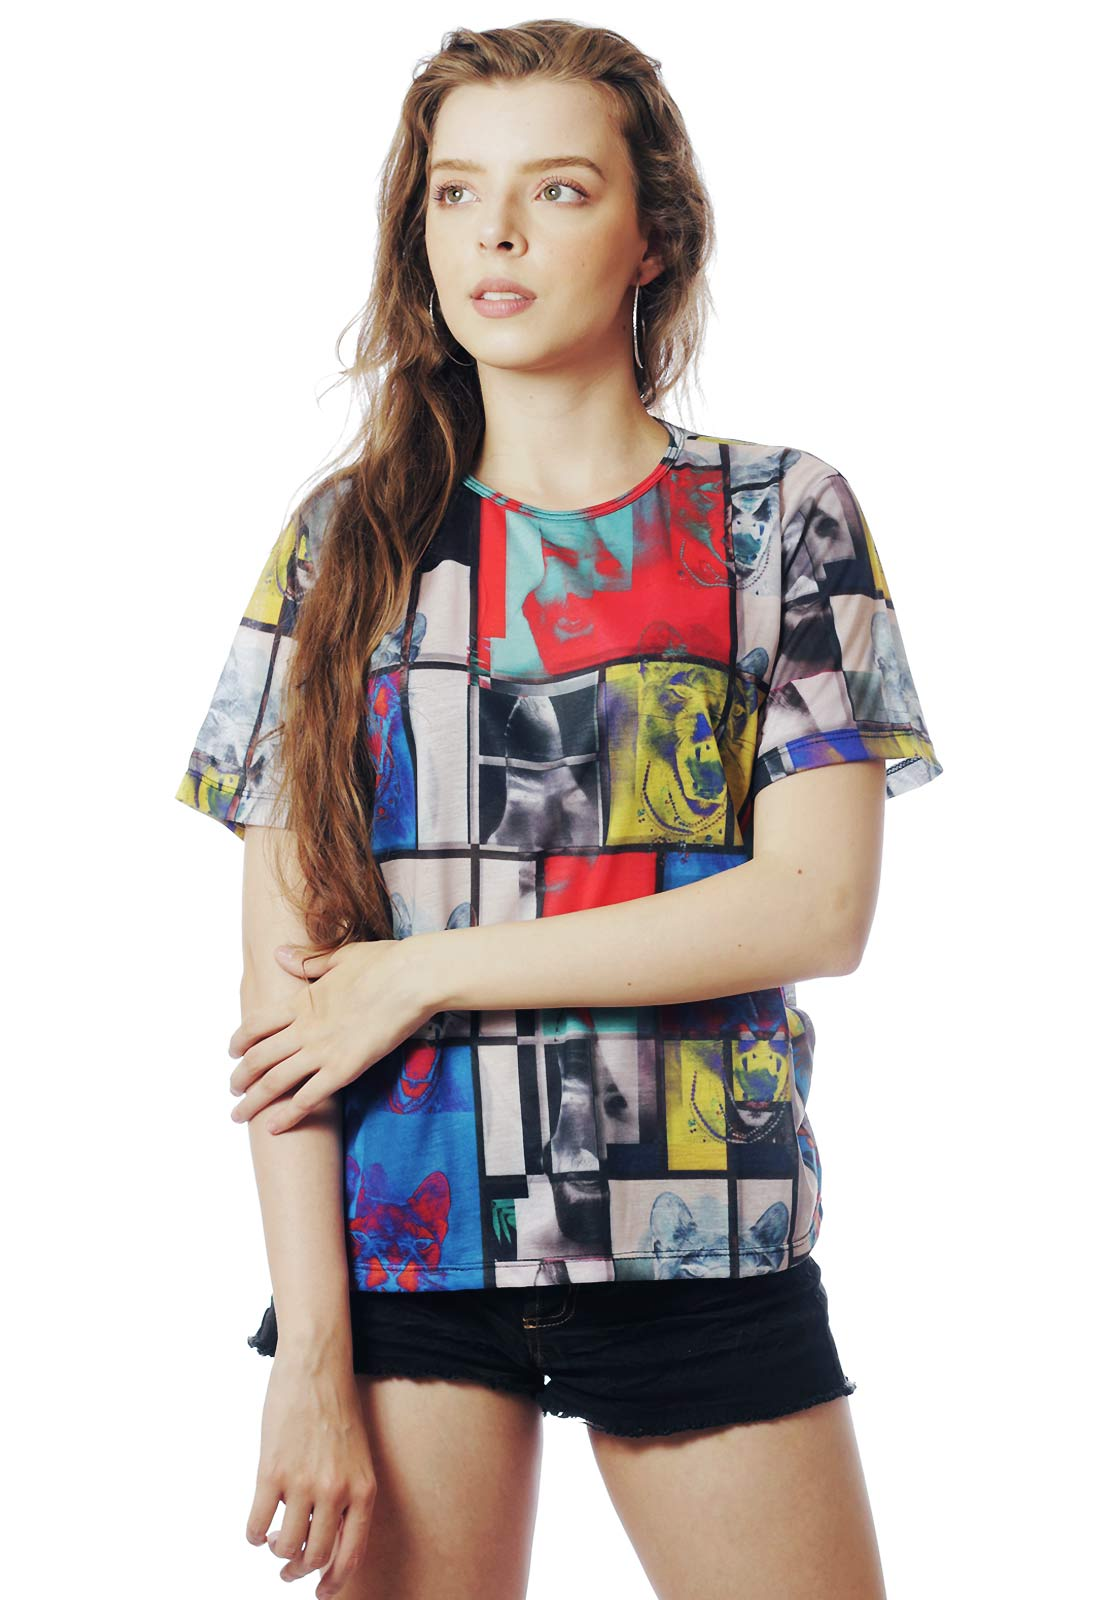 CAMISETA ESTAMPADA FULL PRINT UNISSEX JE SUIS L'ART